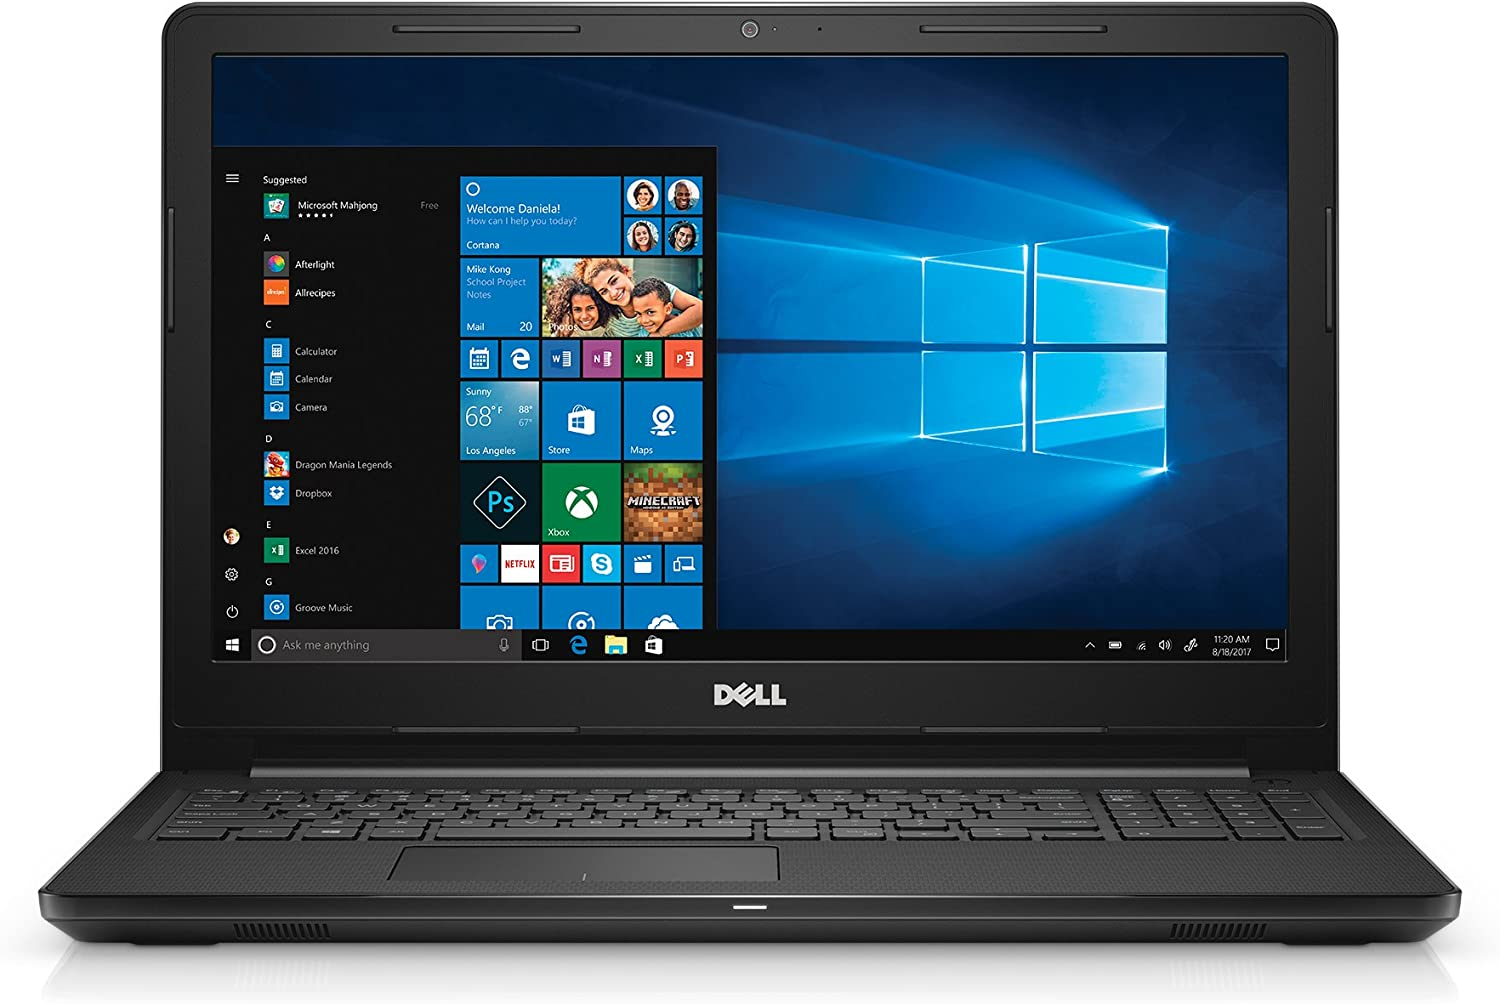 "Dell Inspiron 15 3567 Series – 15"" LED-Backlit Display - 7th Gen Intel Core i3 Proc - 4GB Mem – 128GB SSD - Intel HD Graphics 620"